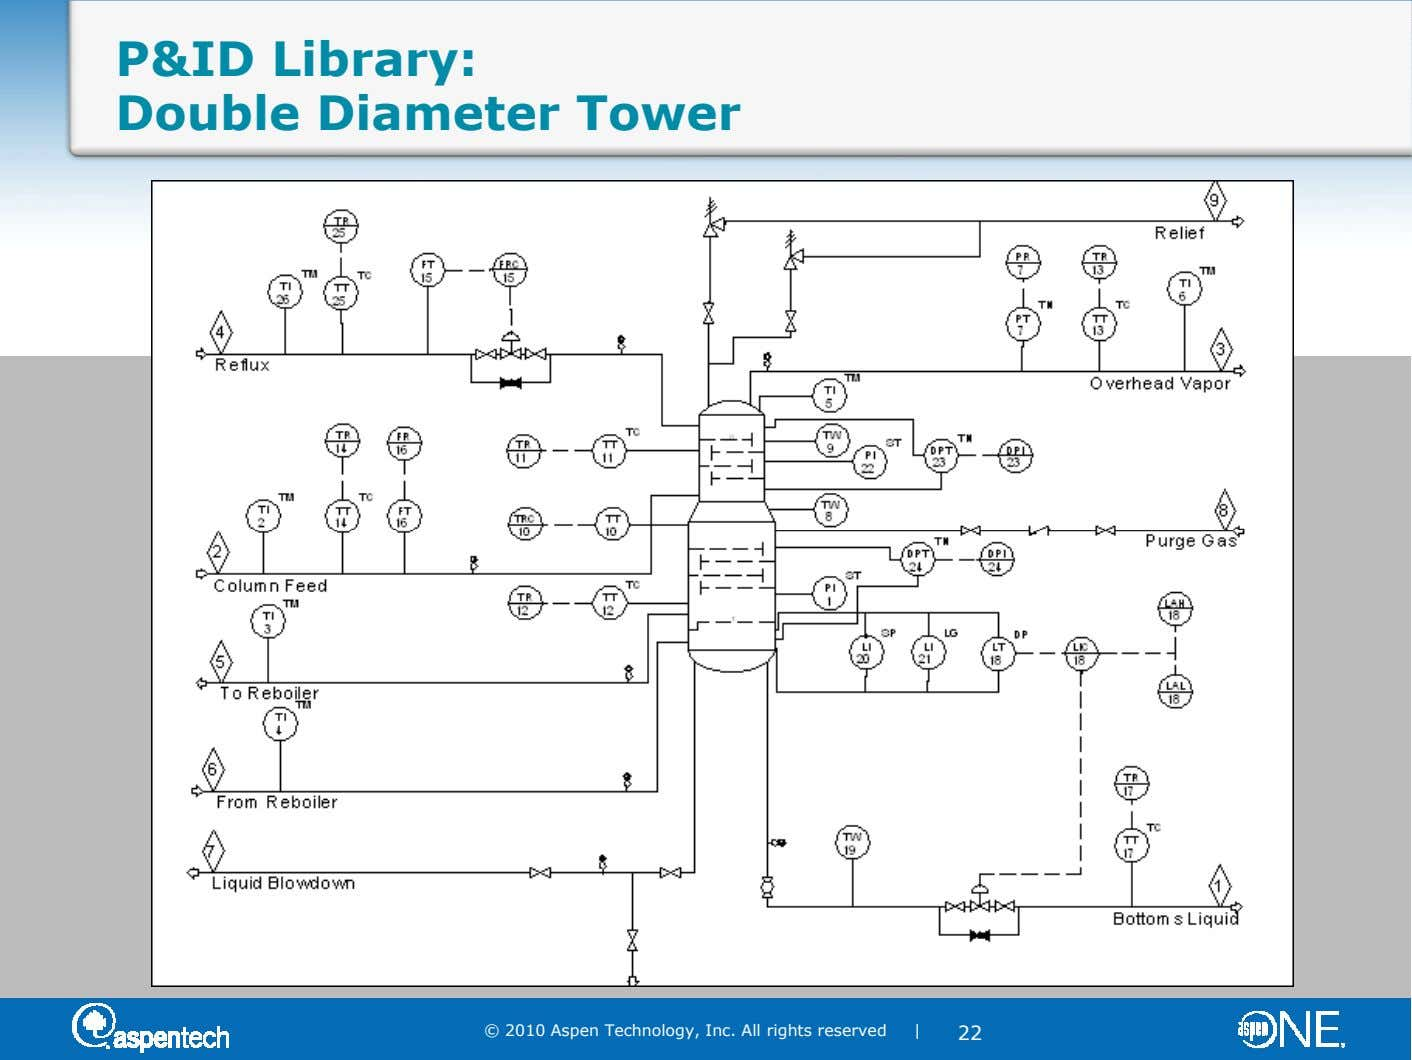 P&ID Library: Double Diameter Tower © 2010 Aspen Technology, Inc. All rights reserved | 22